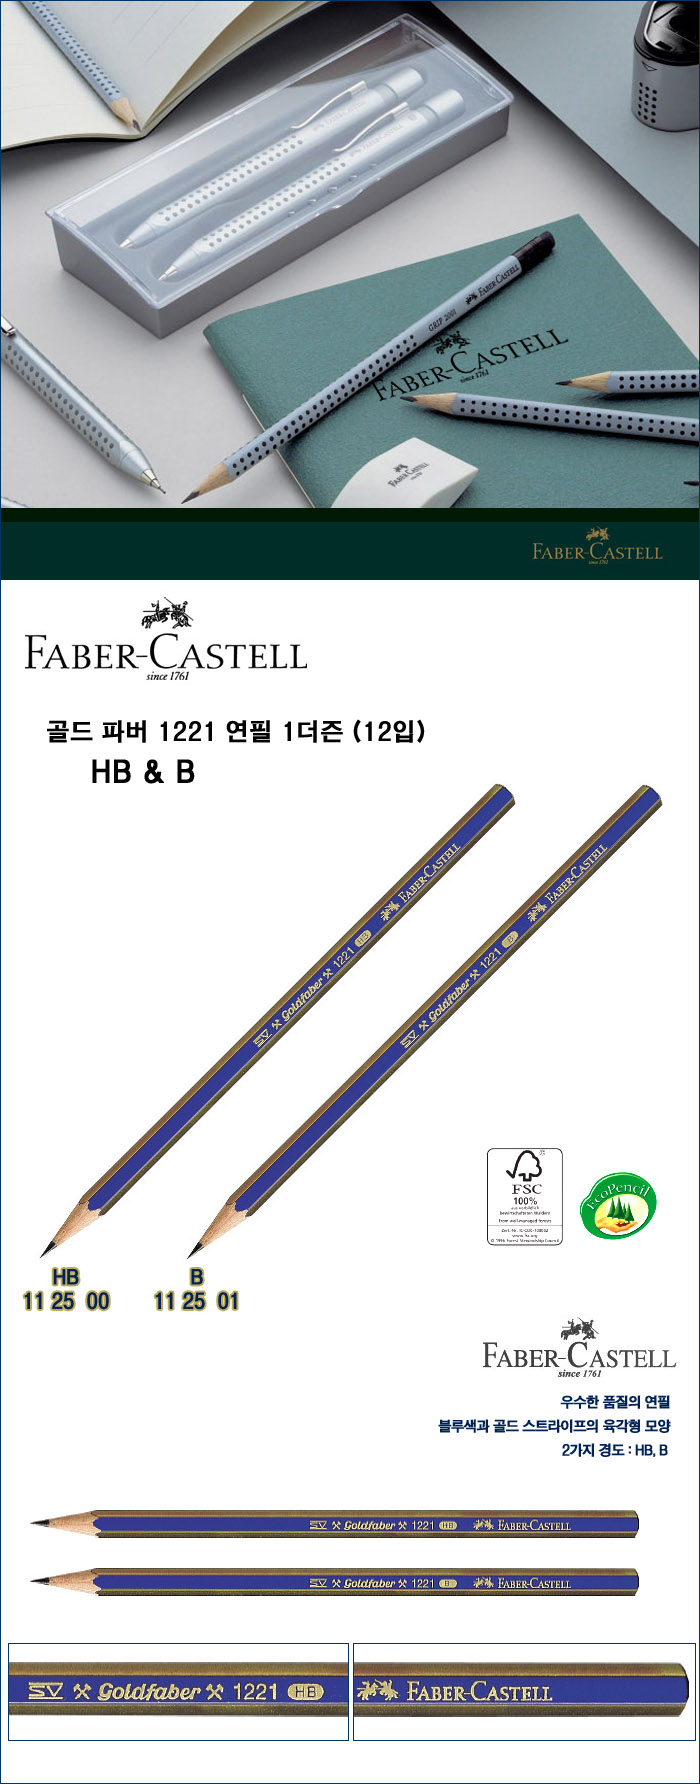 Faber-Castell Gold Faber 1221 Pencils